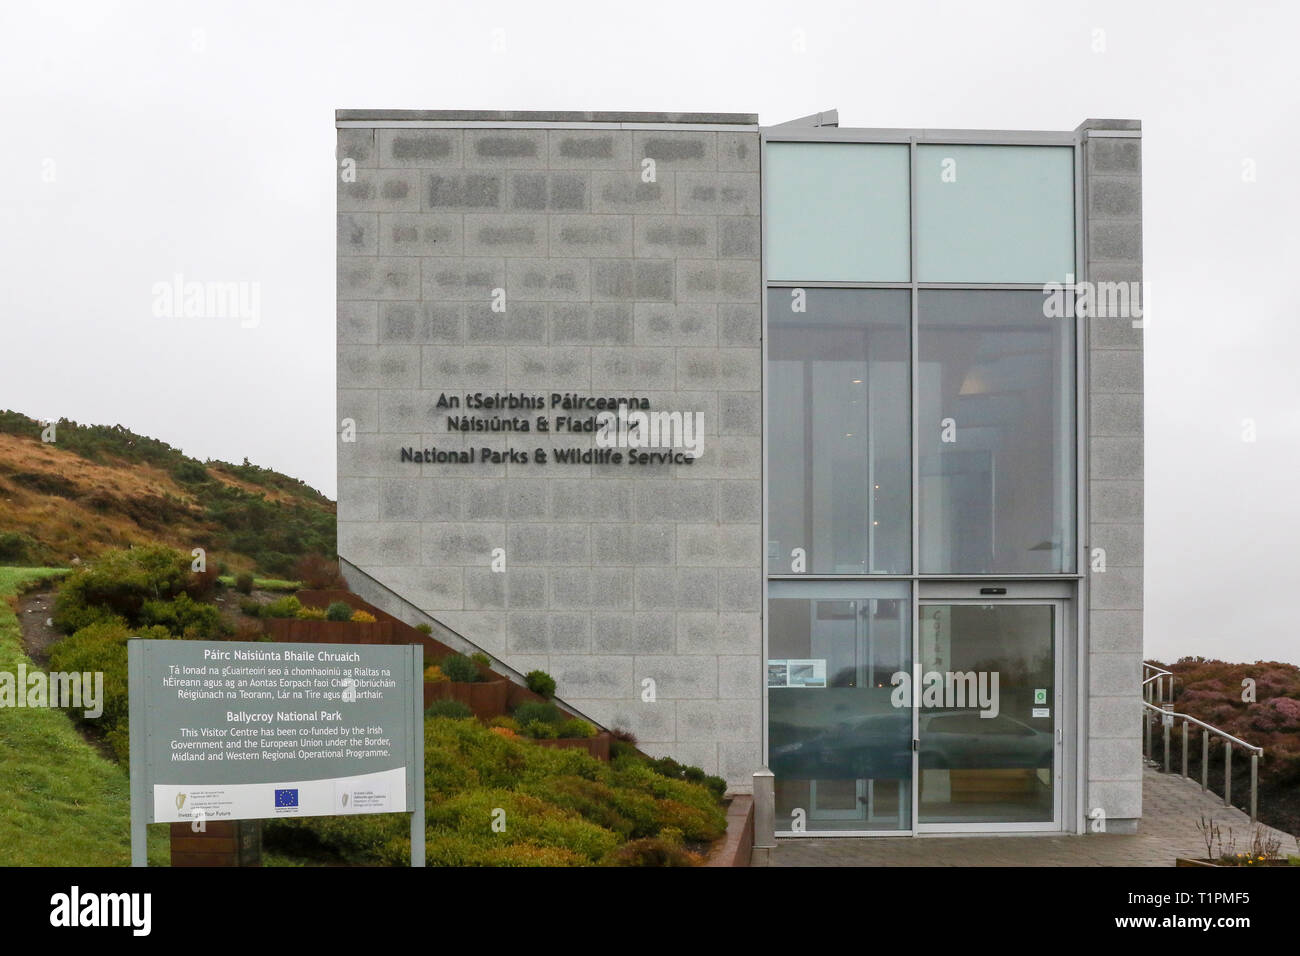 Exterior and front entrance to the Visitor's Centre at Ballycroy National Park in County Mayo., Ireland. - Stock Image